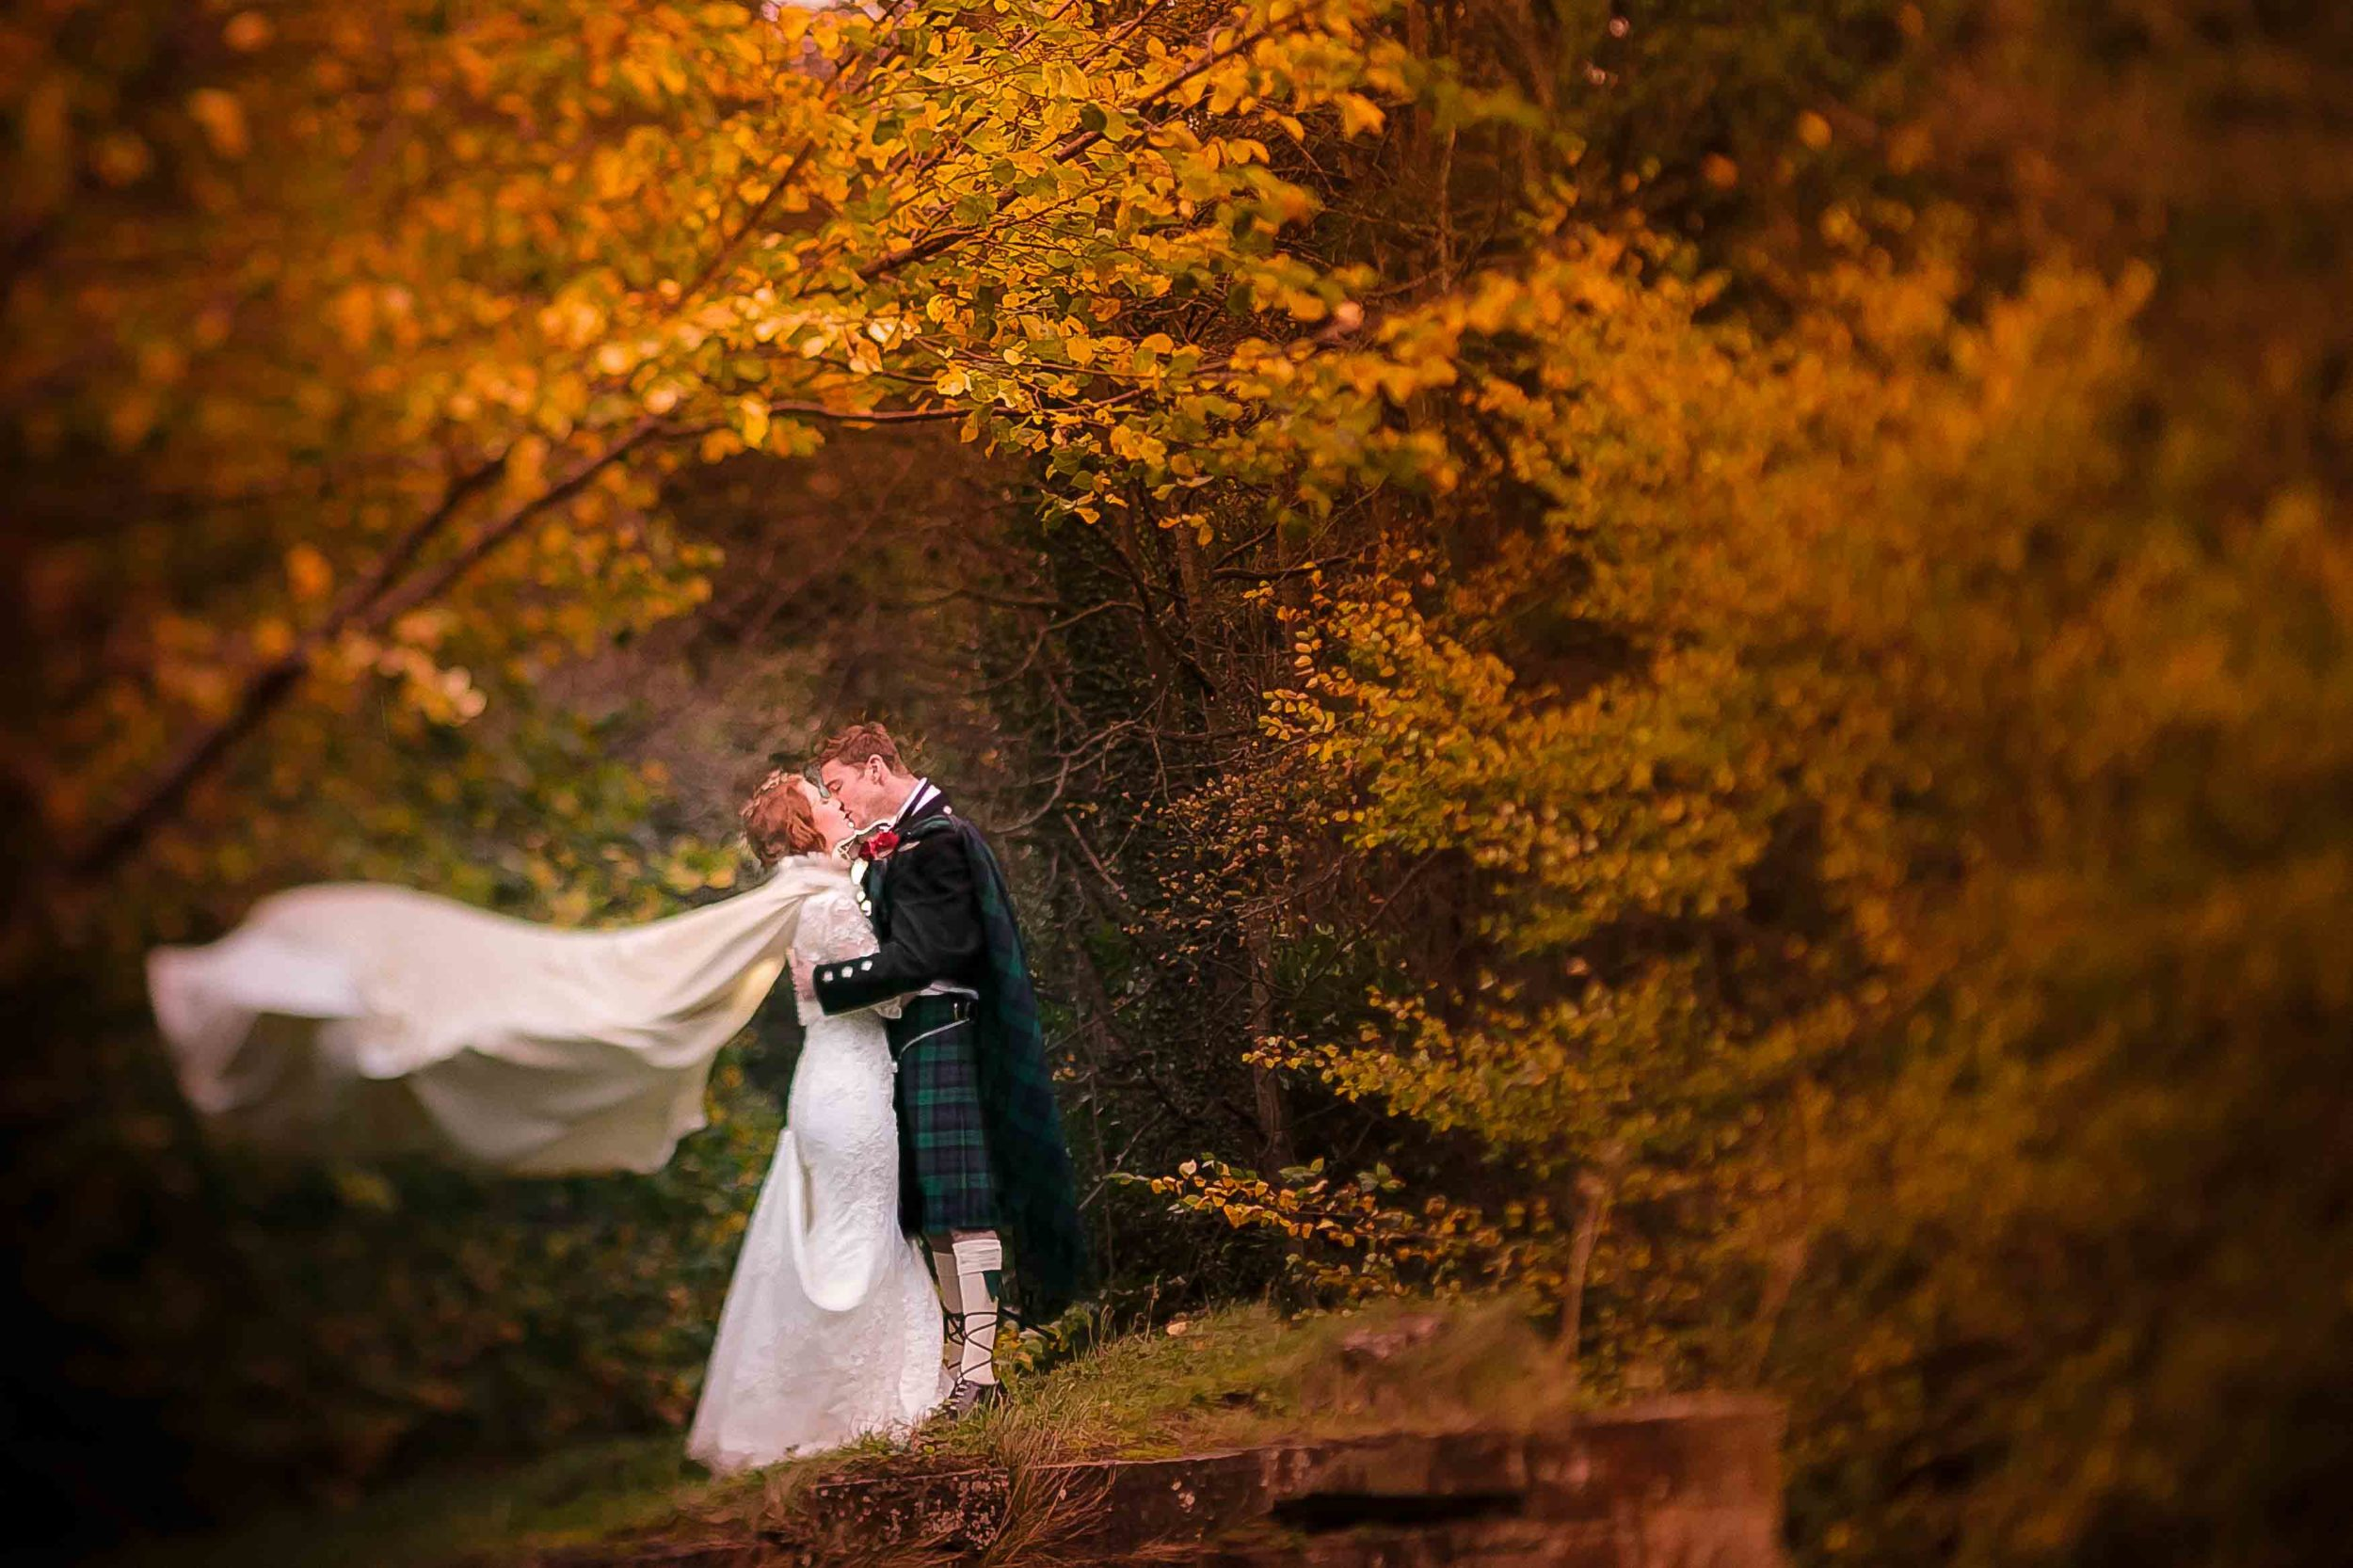 Scottish bride with flowing cape and kilted groom stand beneath orange trees.